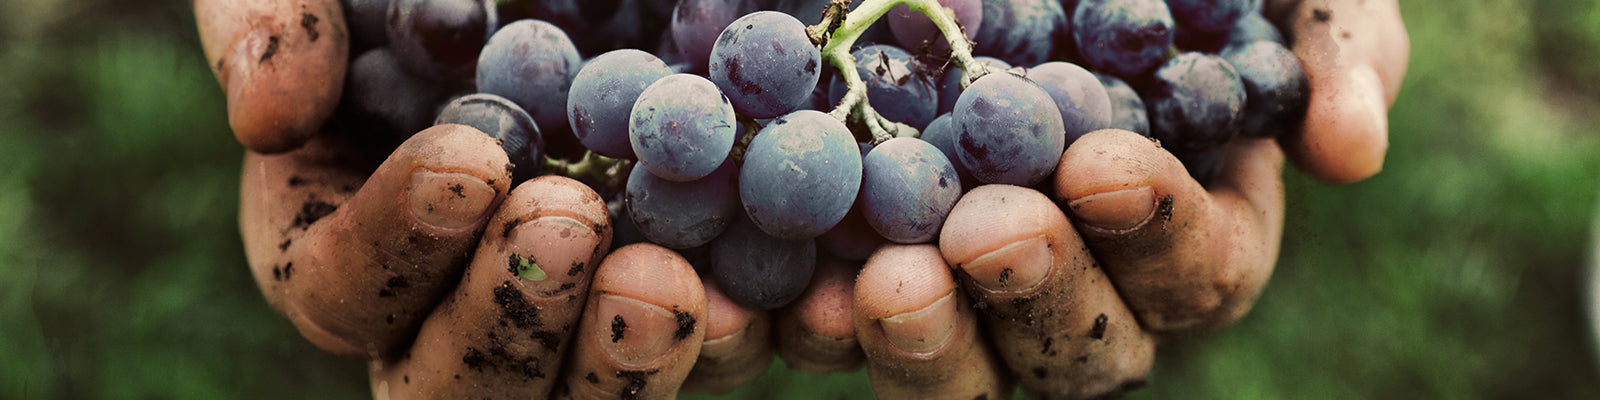 Organic vs. Biodynamic: what you need to know